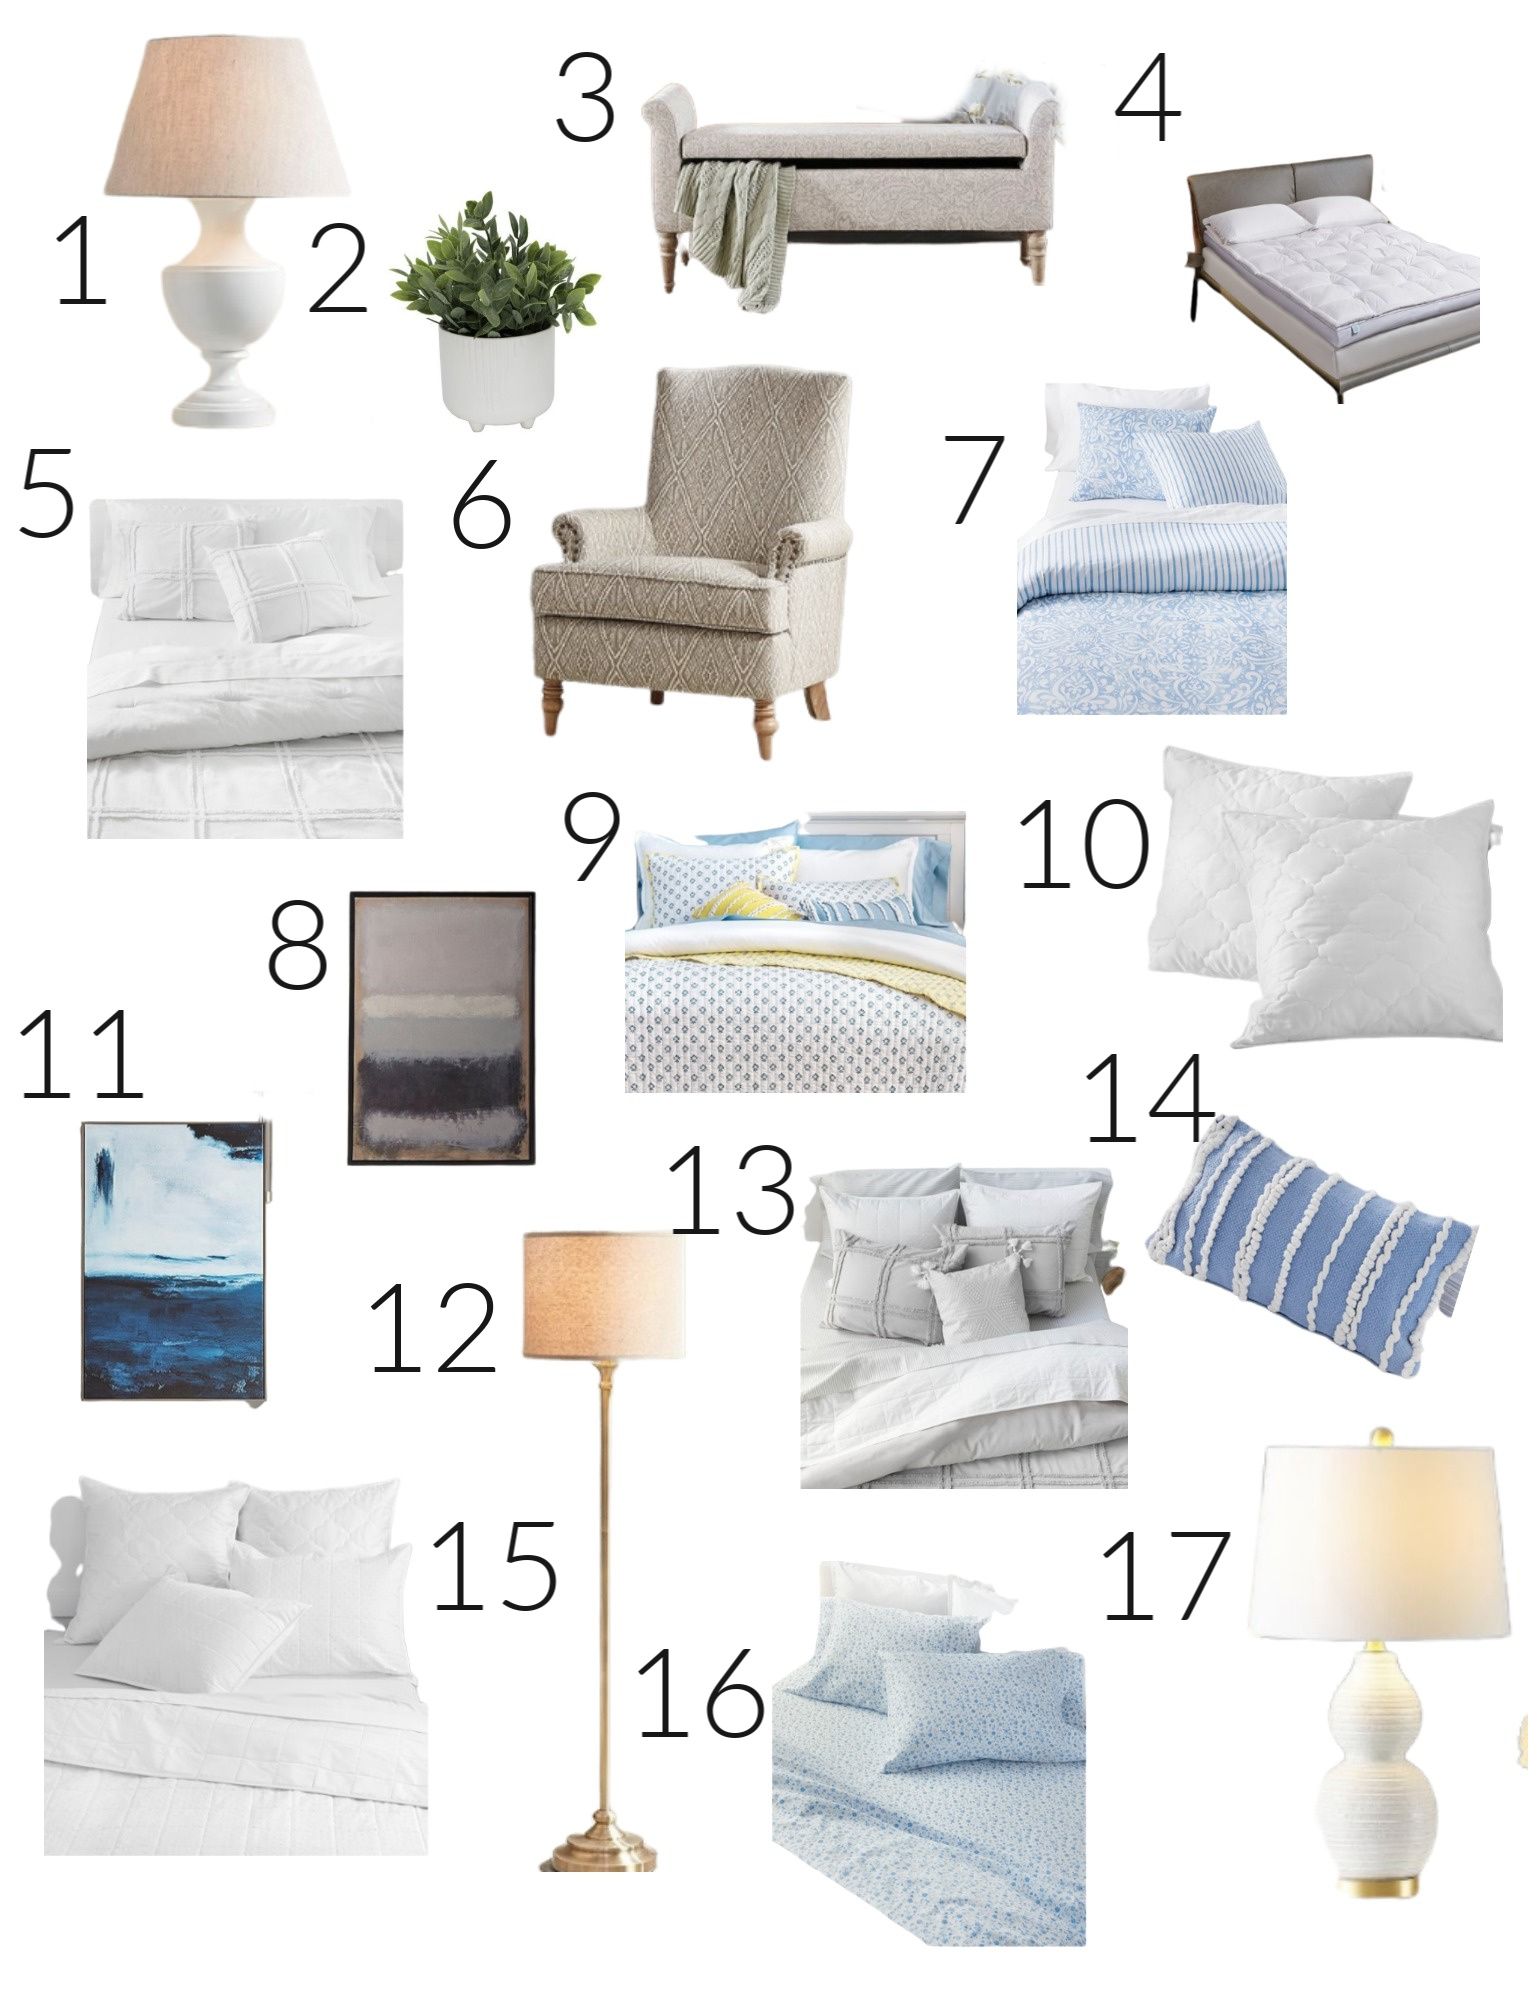 Summer Bedroom Refresh with Zulily